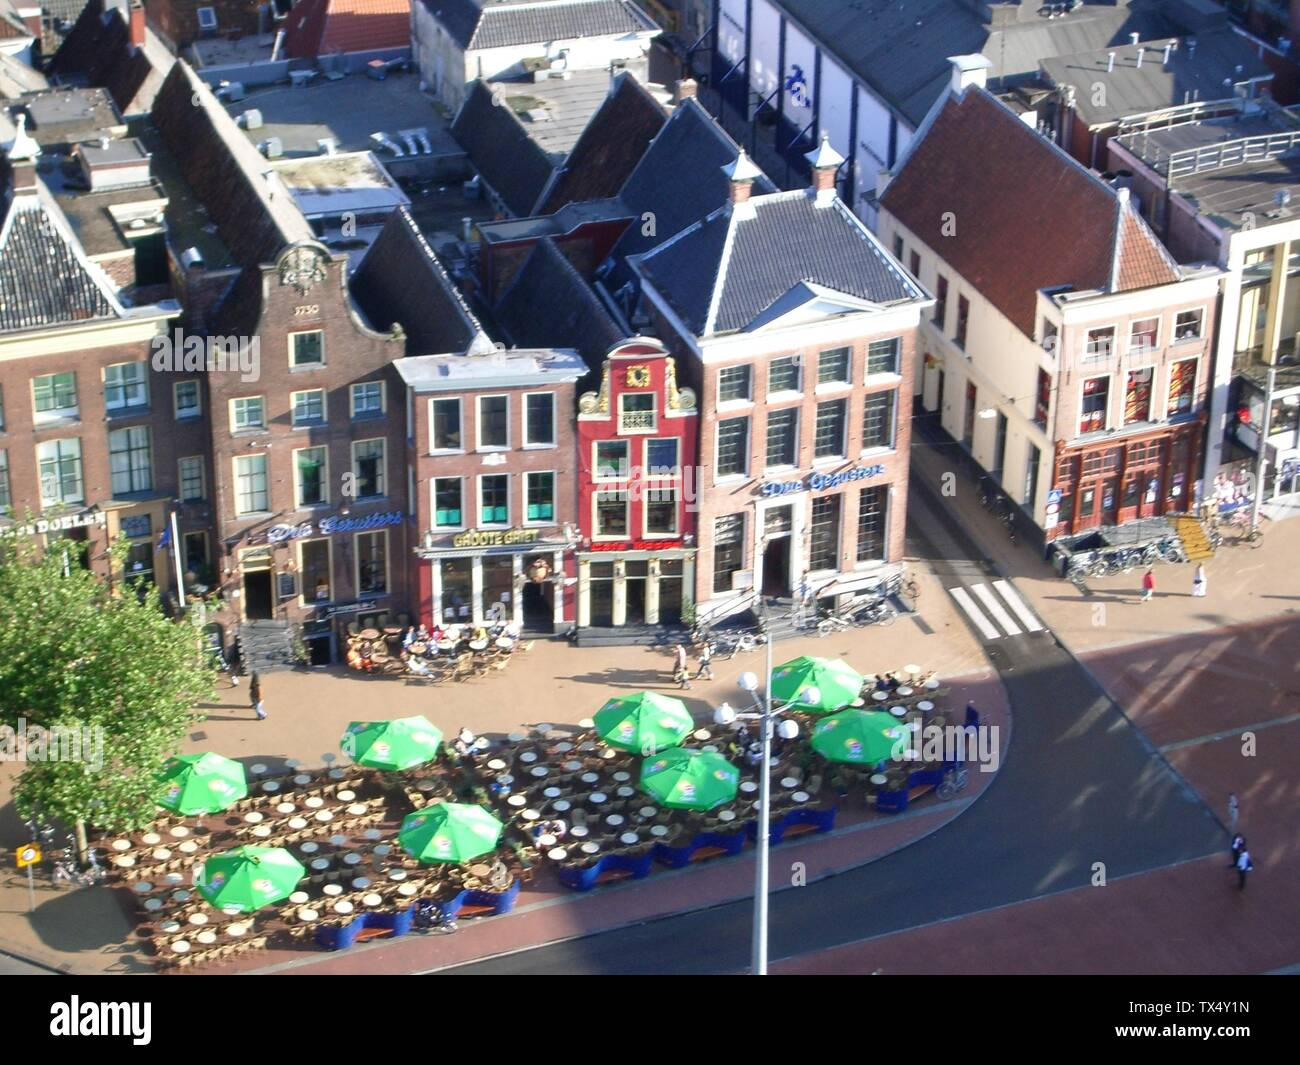 Dutch Square Wikipedia >> 18468 Stock Photos 18468 Stock Images Alamy